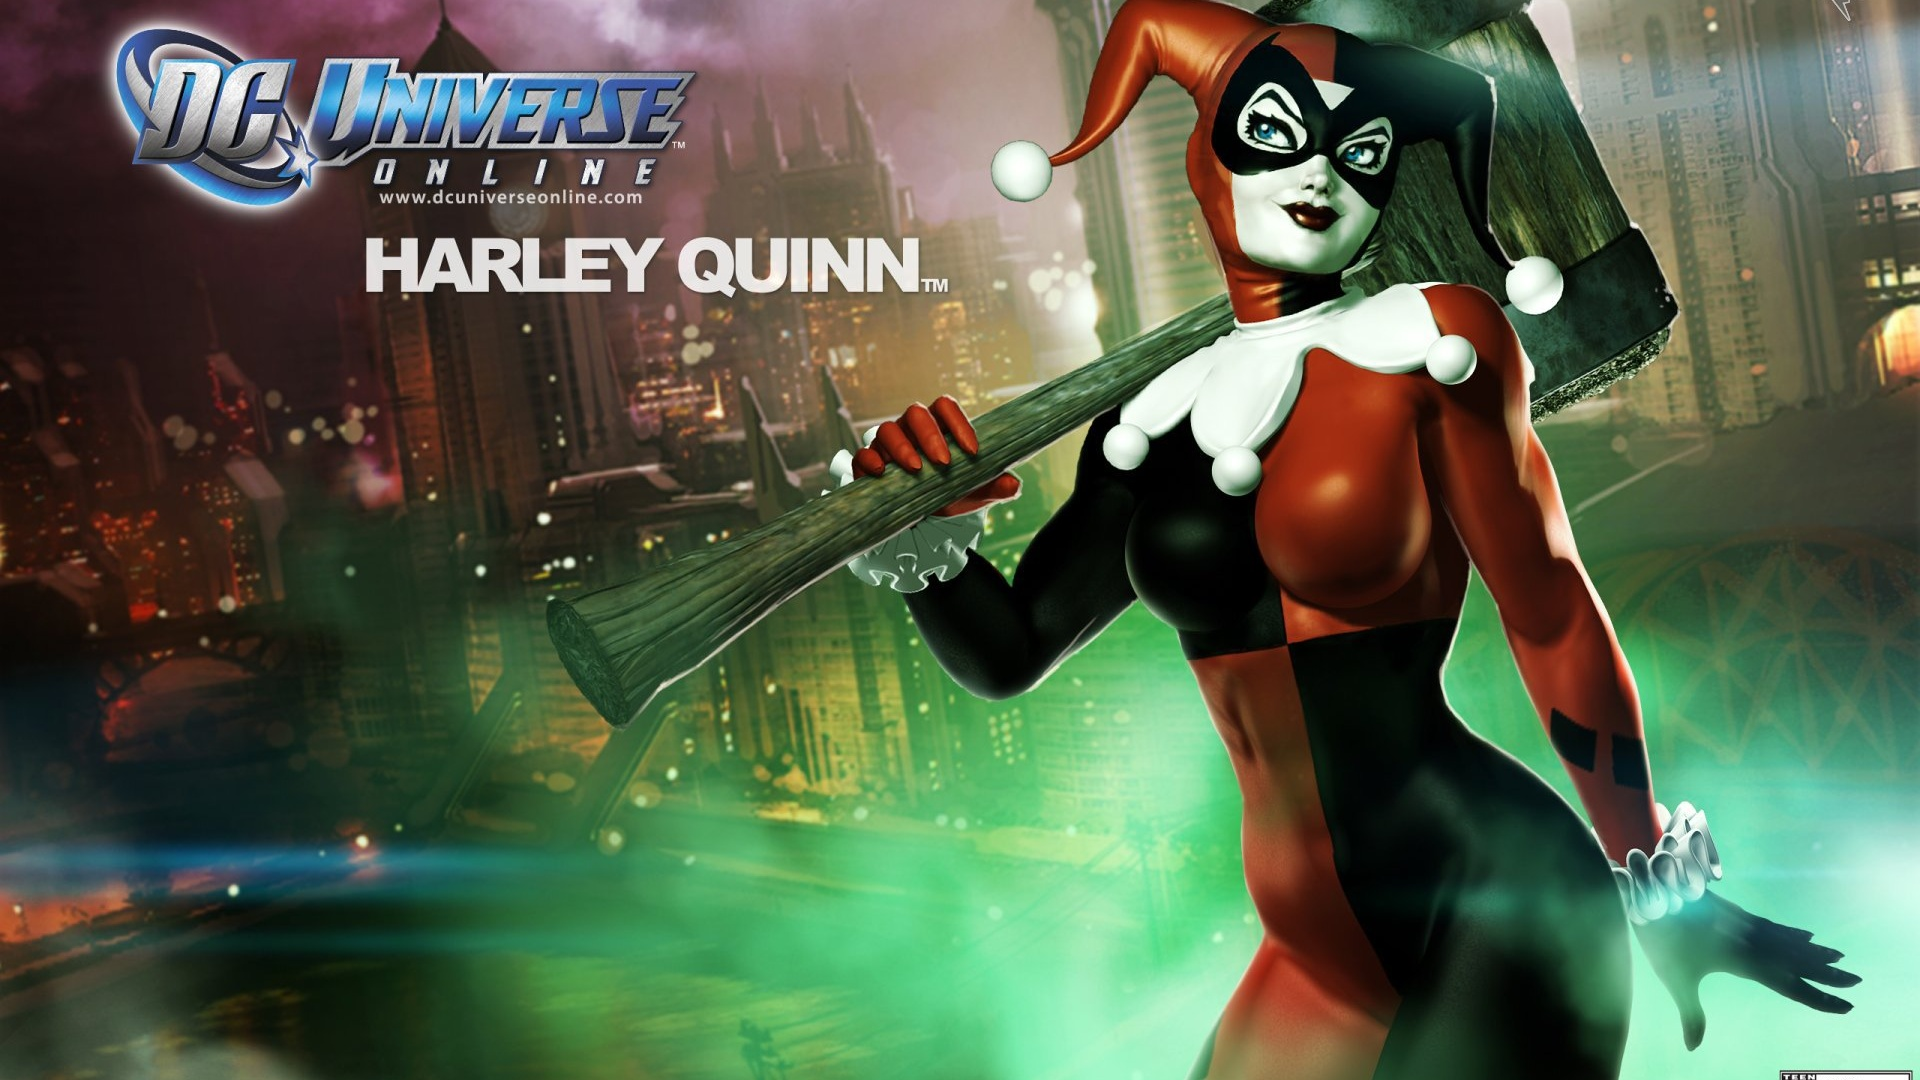 Hd wallpaper os x - 1920x1080 Dc Universe Online Desktop Pc And Mac Wallpaper